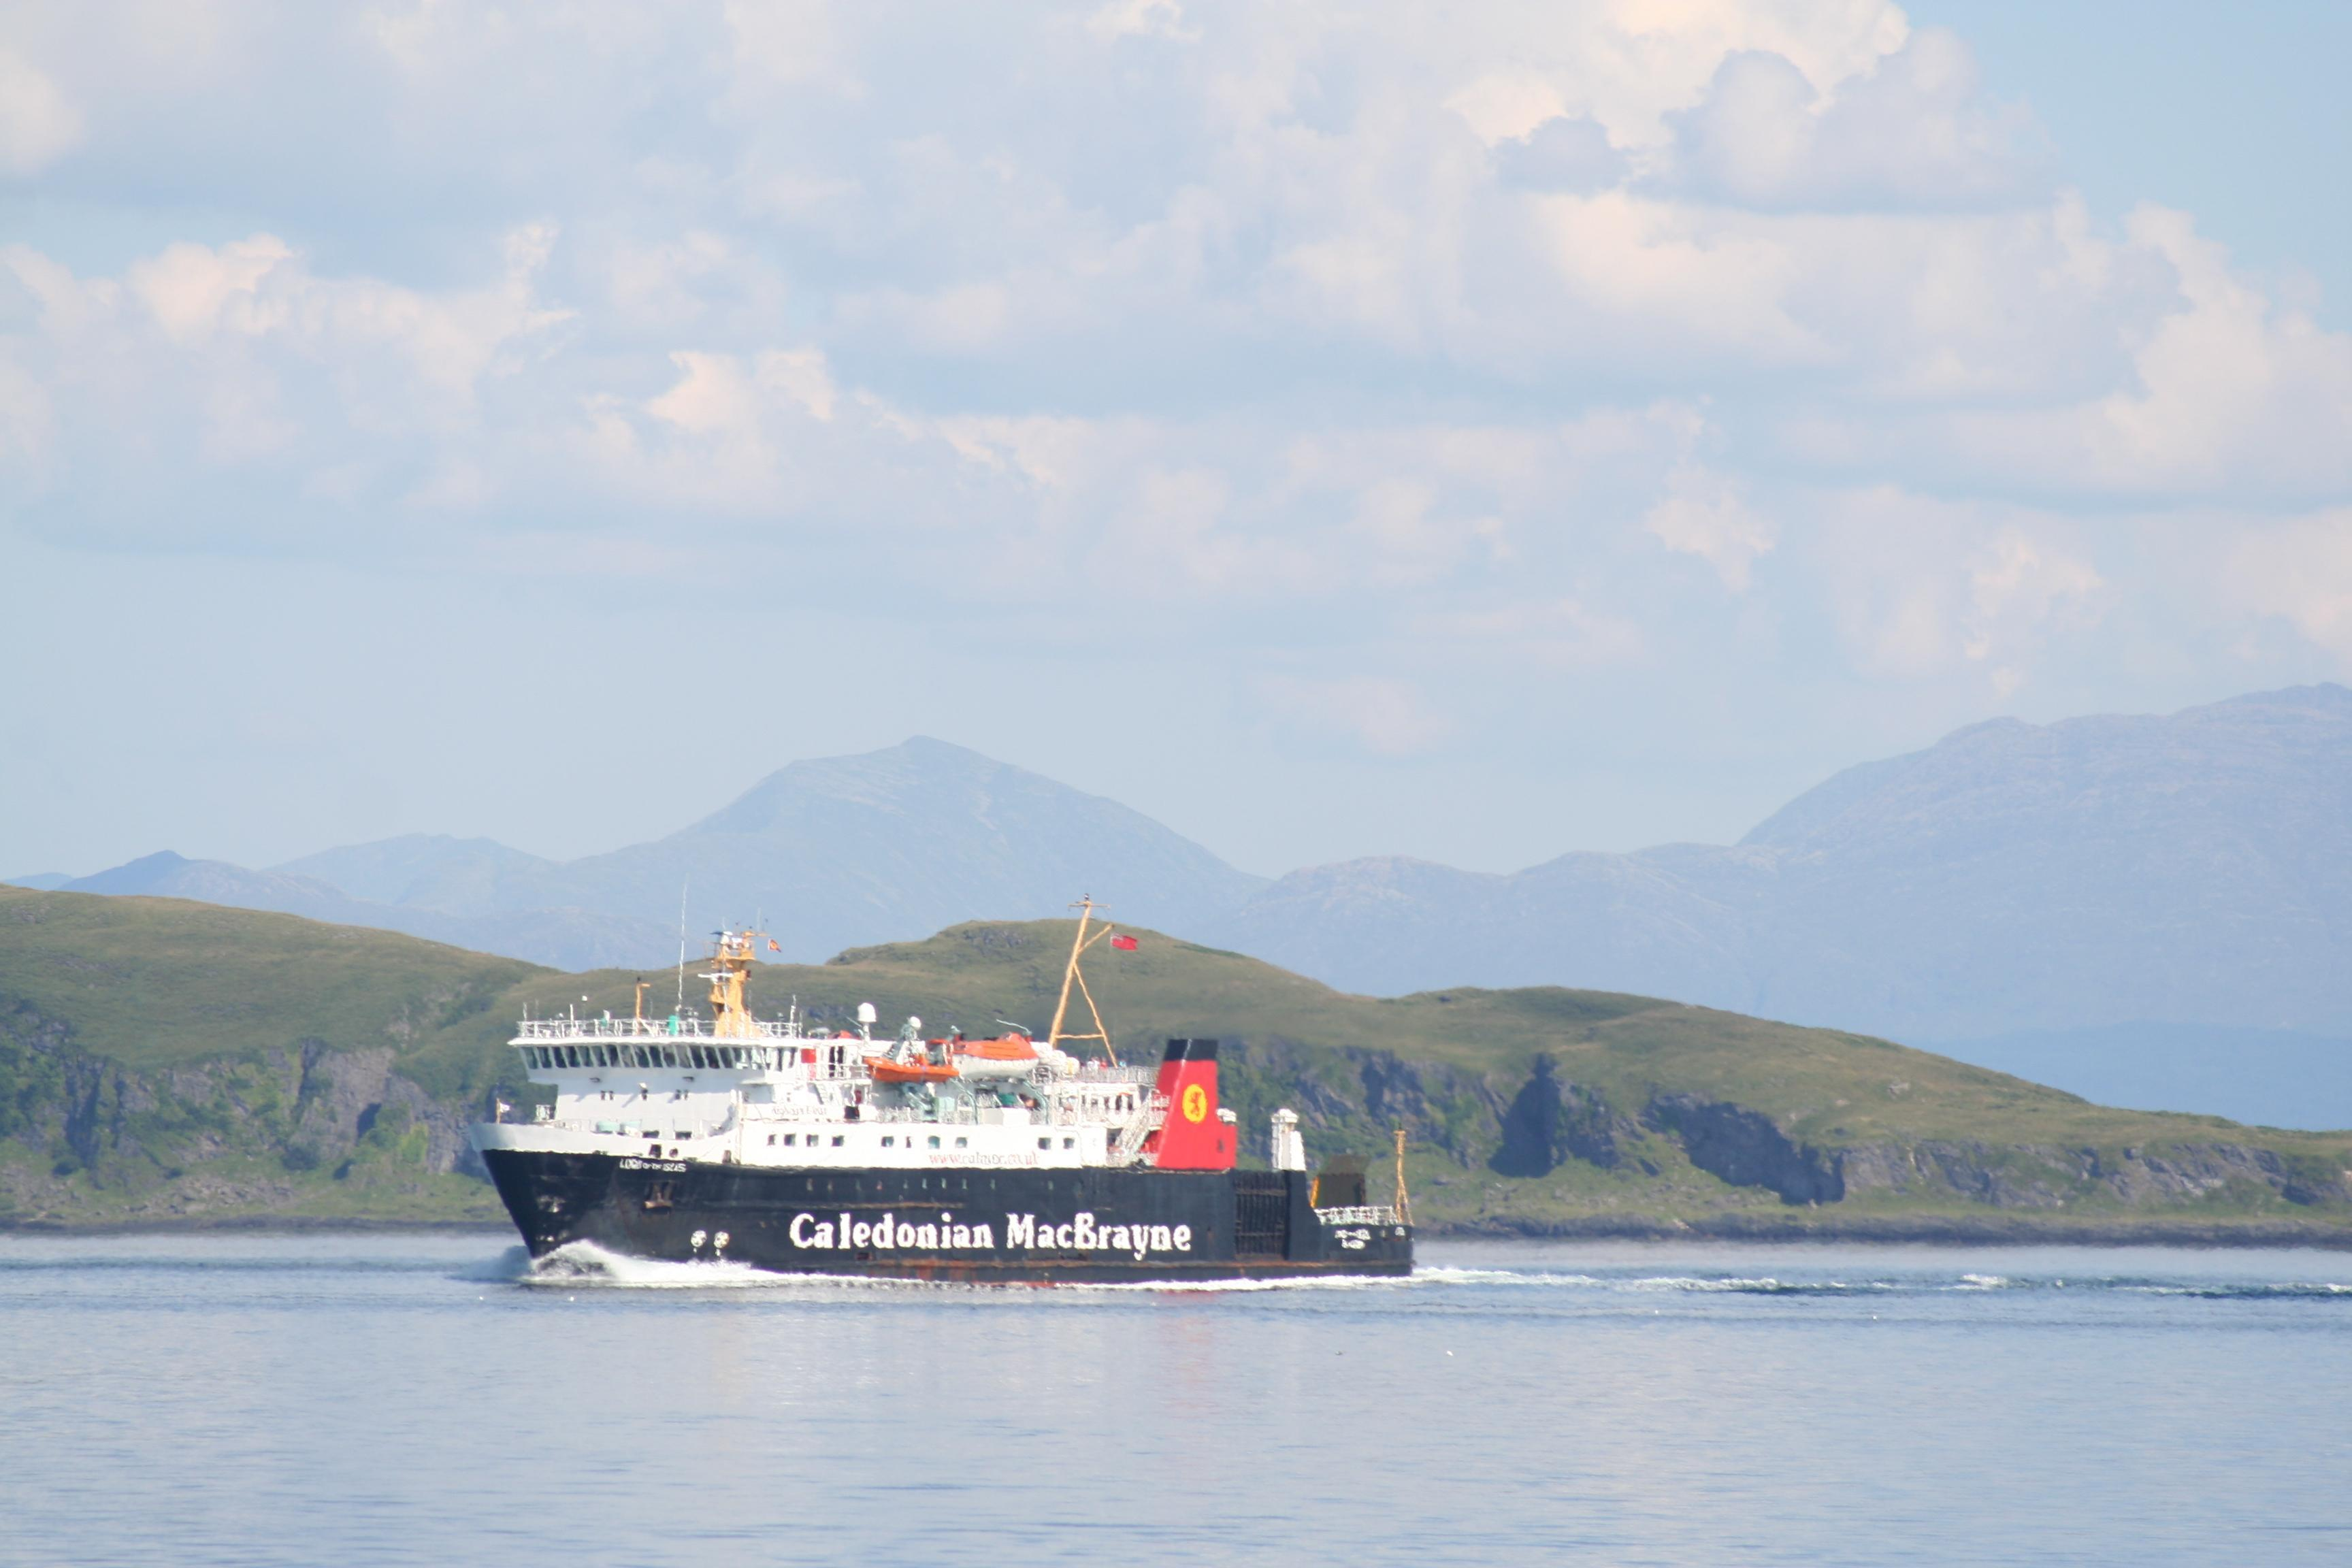 Cal Mac ferry en route between Mull and Oban